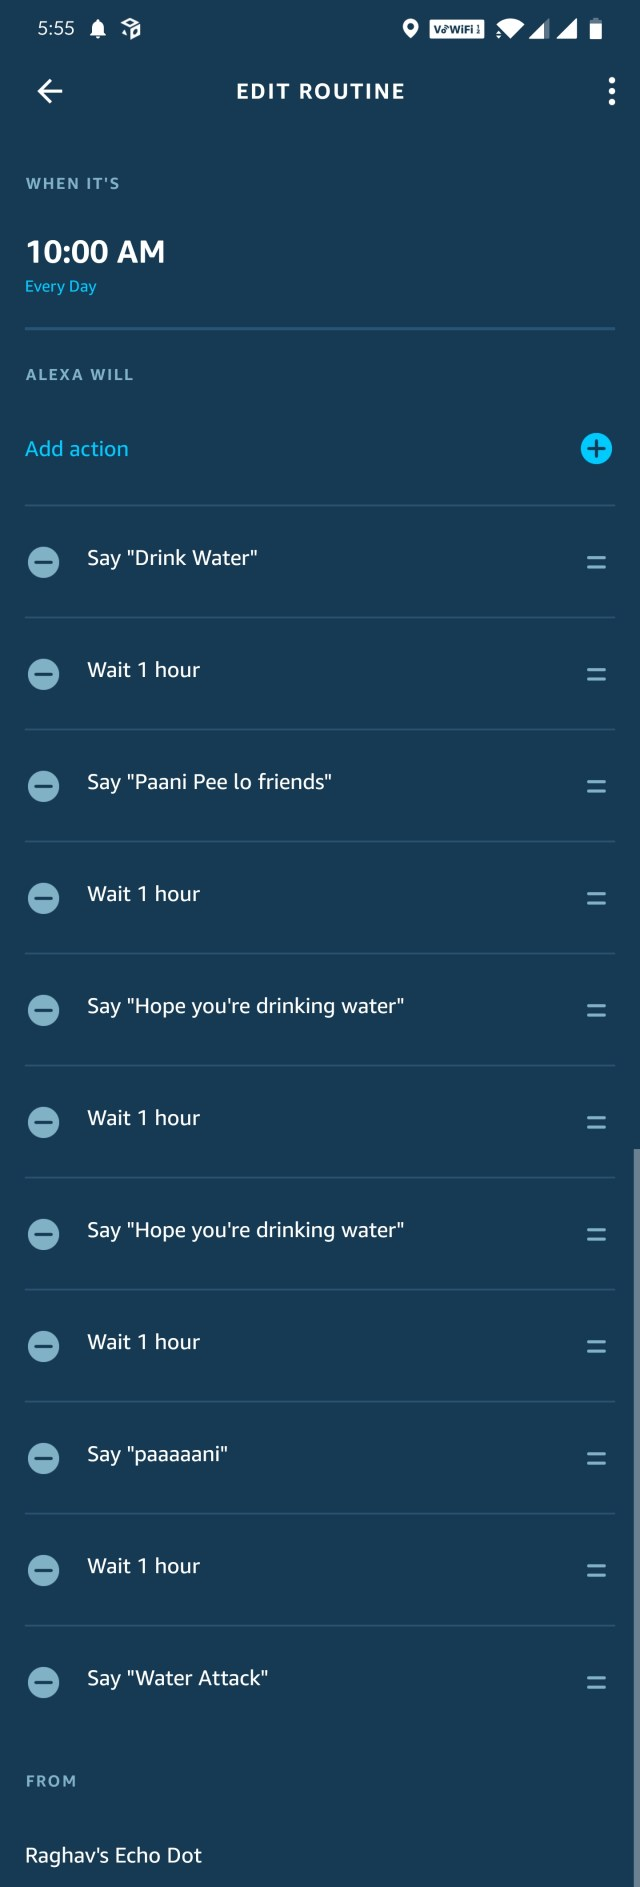 Stay hydrated reminders on Amazon Echo dot